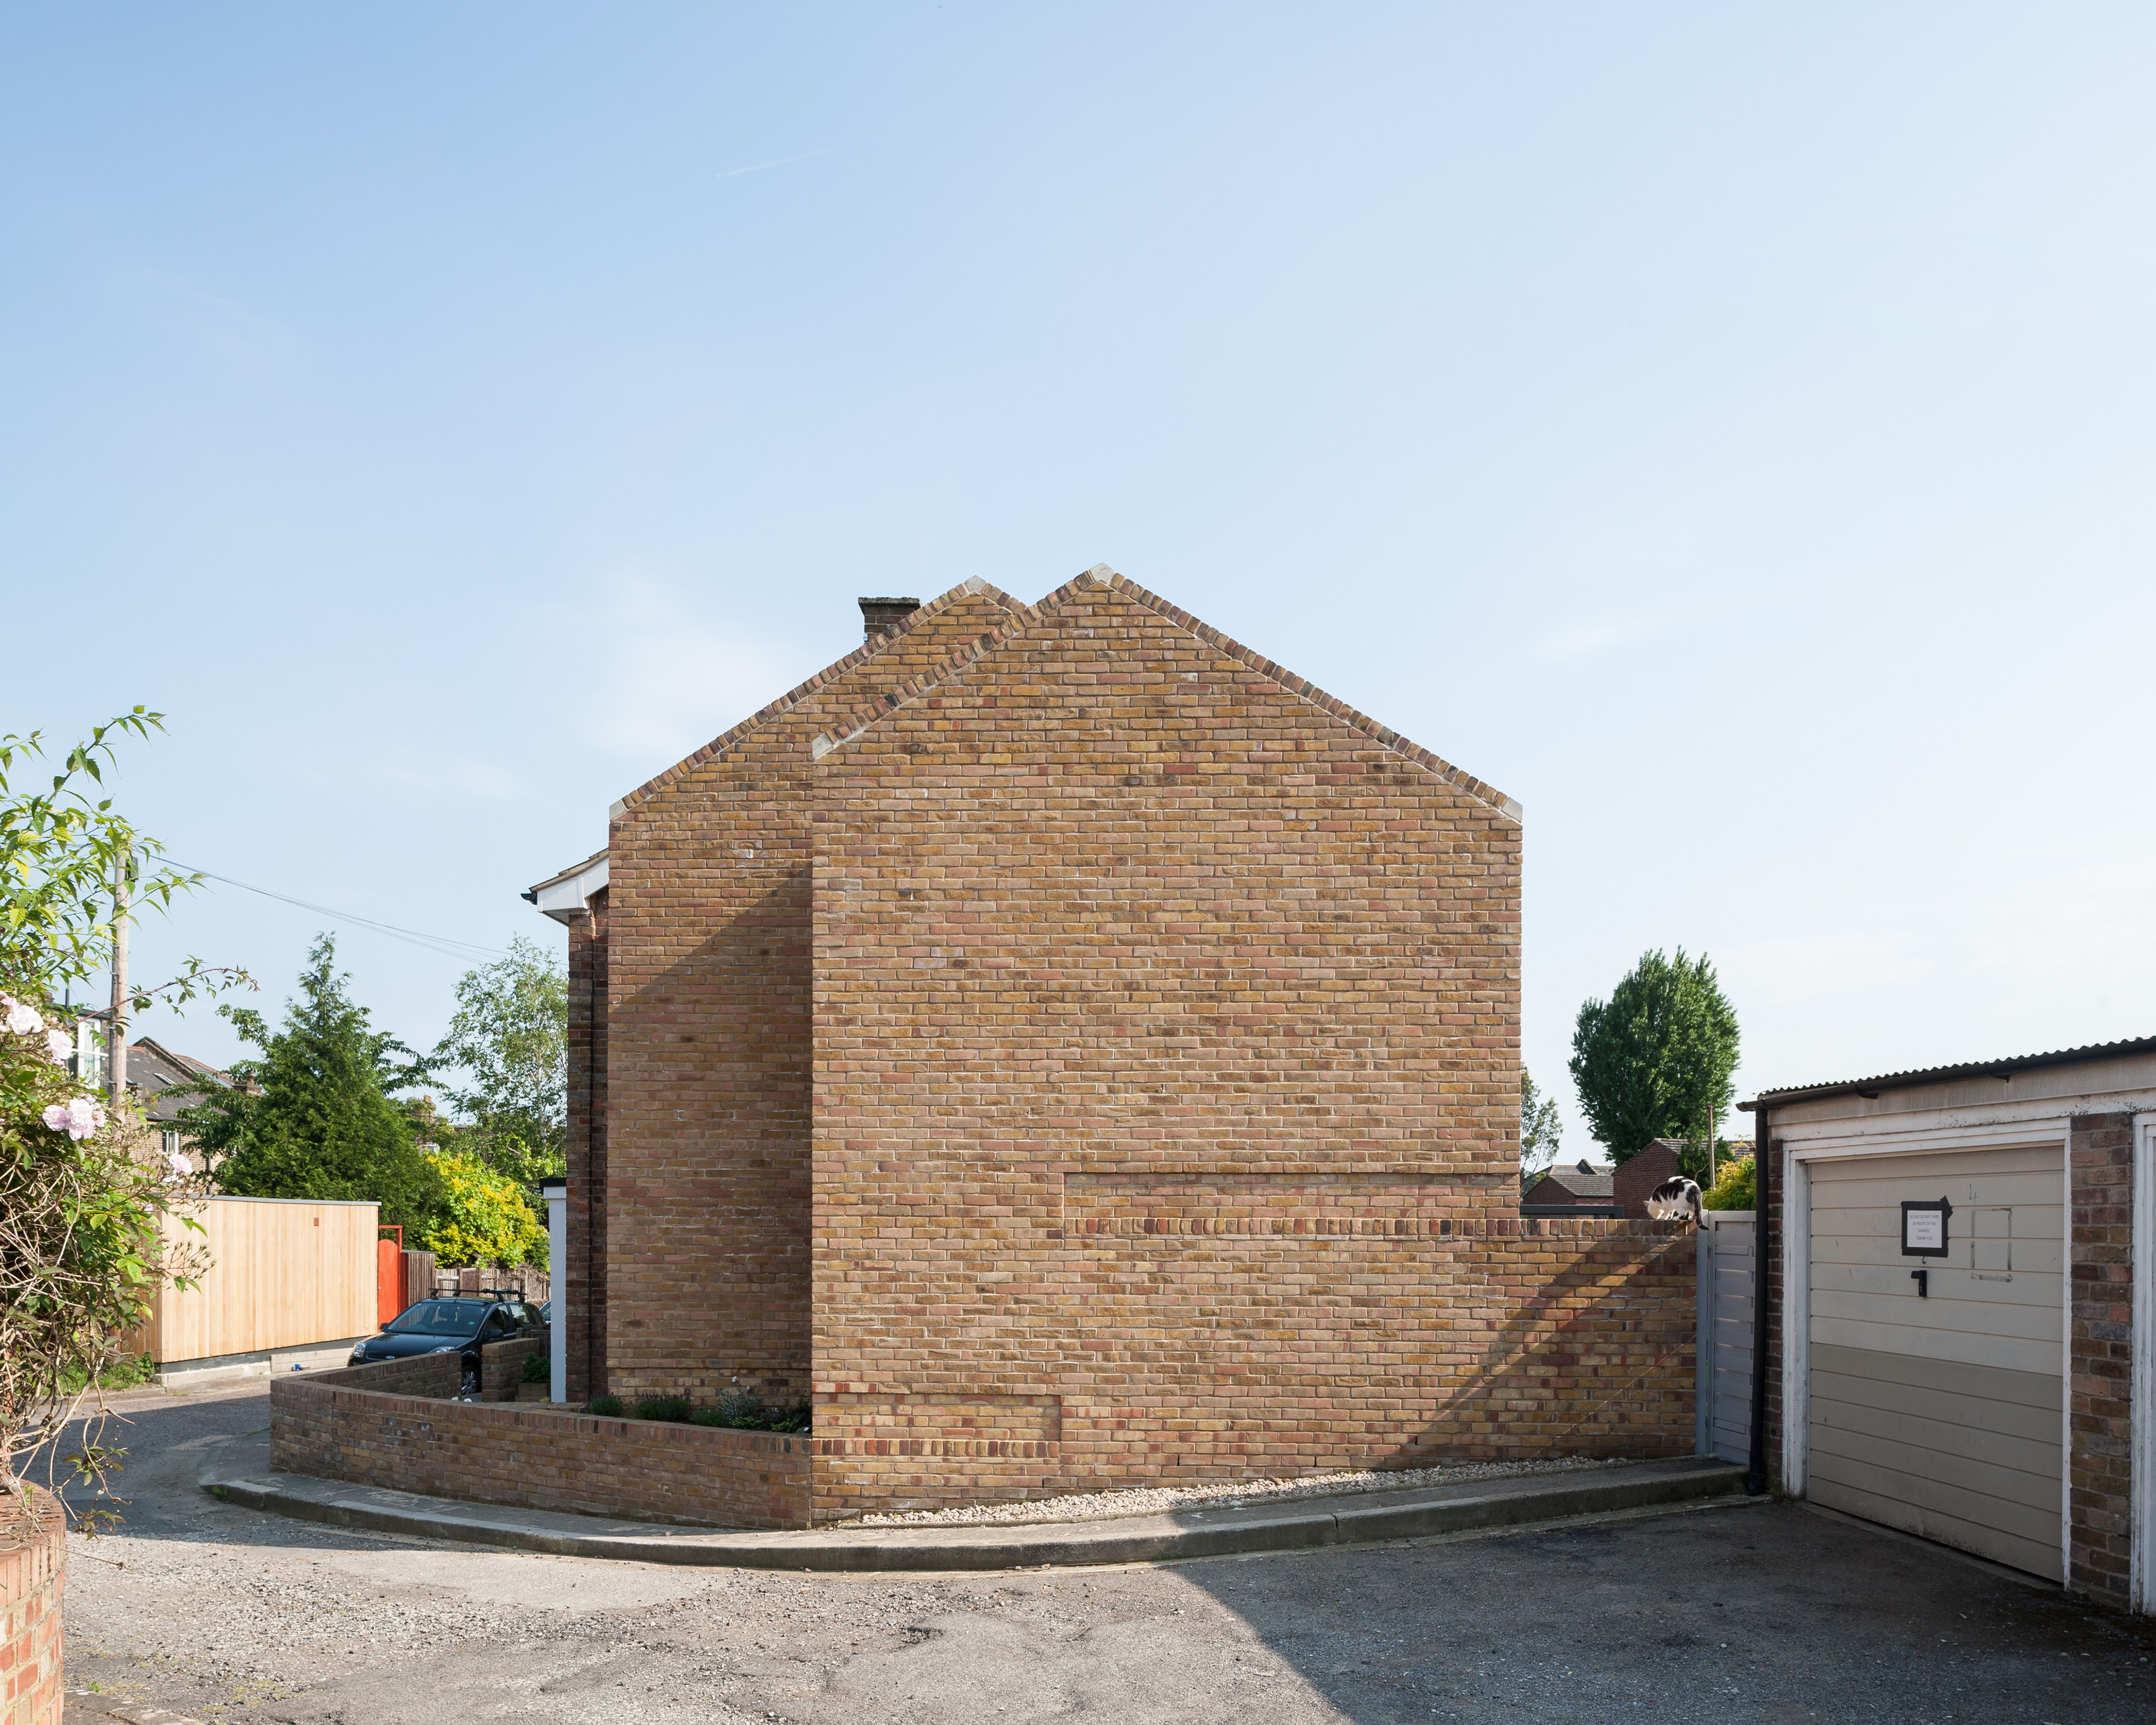 fetching home extension ideas. Re imagining a 1960 s terraced house with 2 storey side extension  brick gable walls